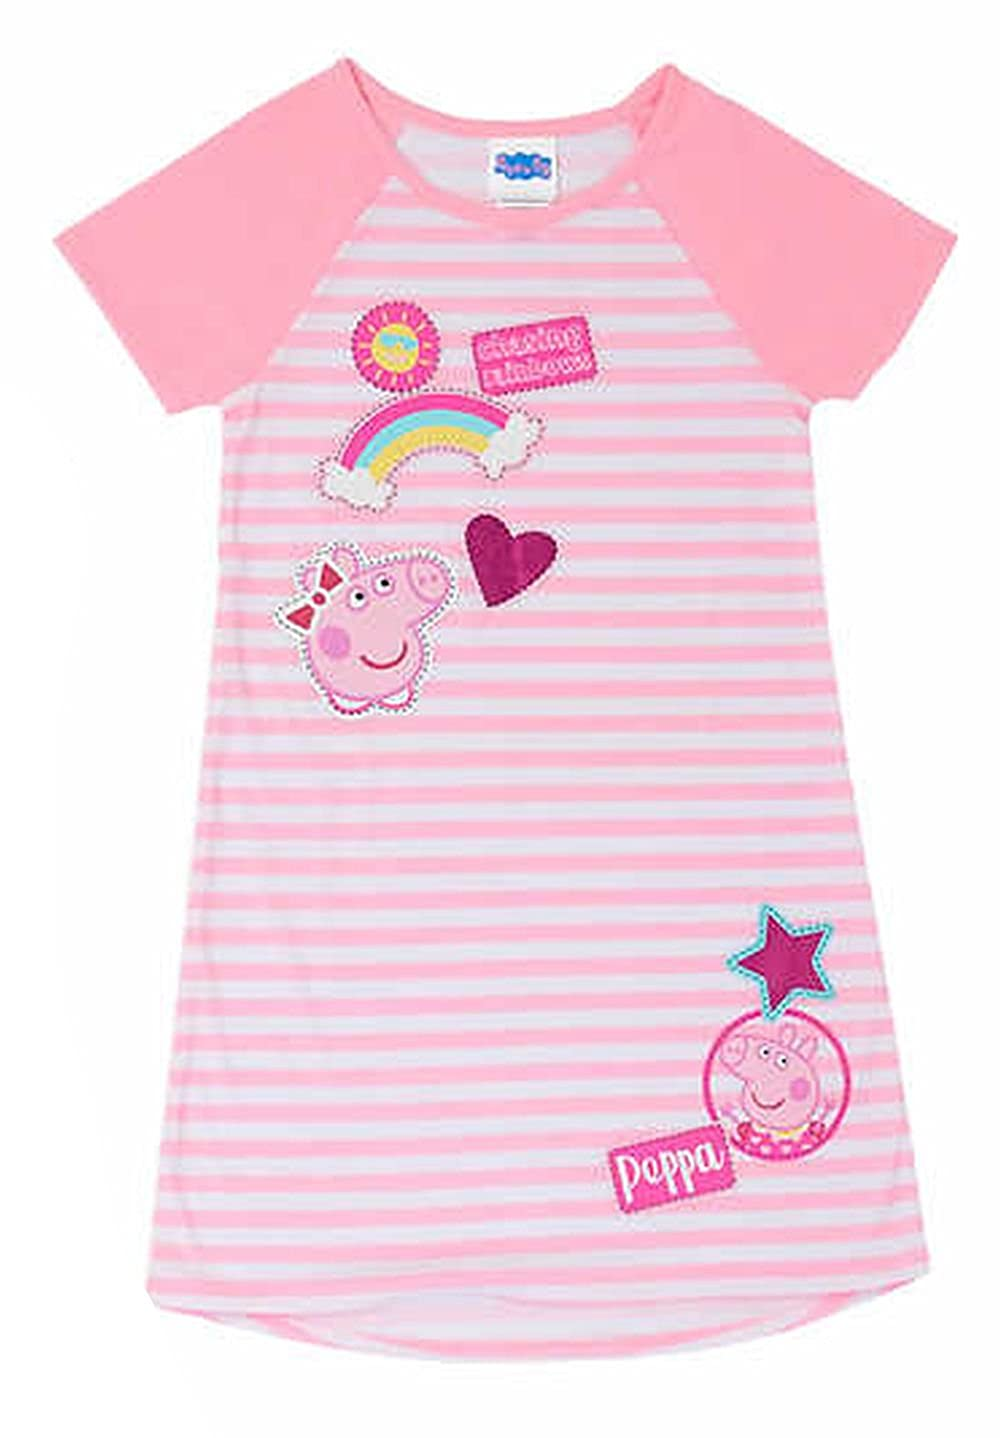 65ac1f742 Amazon.com: Komar Kids Peppa Pig Pink Striped Chasing Rainbows Nightgown,  Gown: Clothing